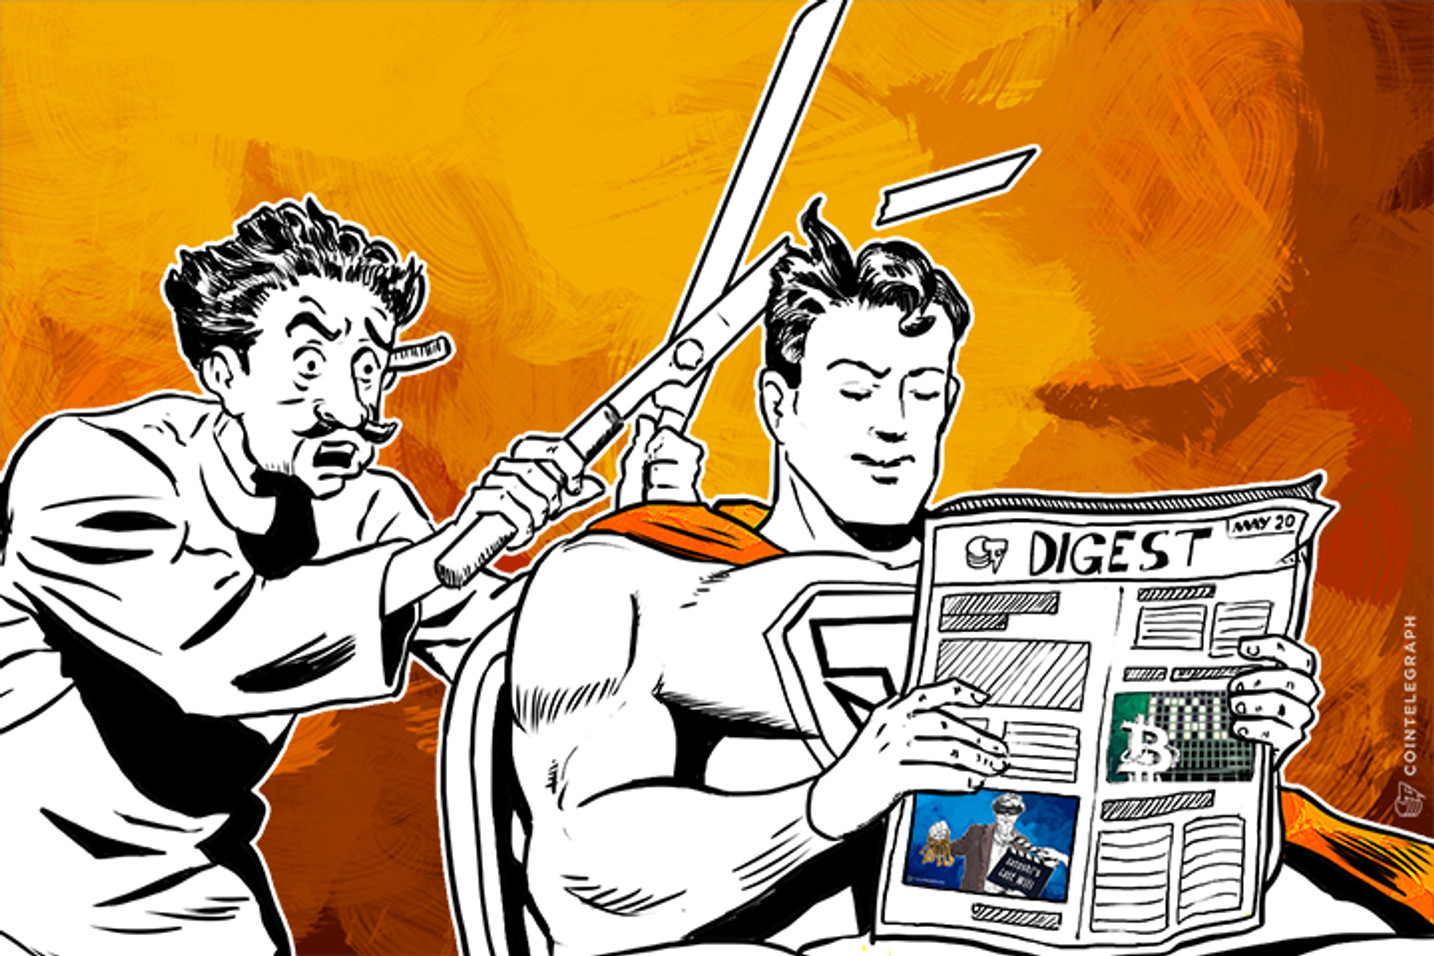 MAY 20 DIGEST: NYSE Launches Bitcoin Index, Overstock Invests in 'Alternative Trading' Company